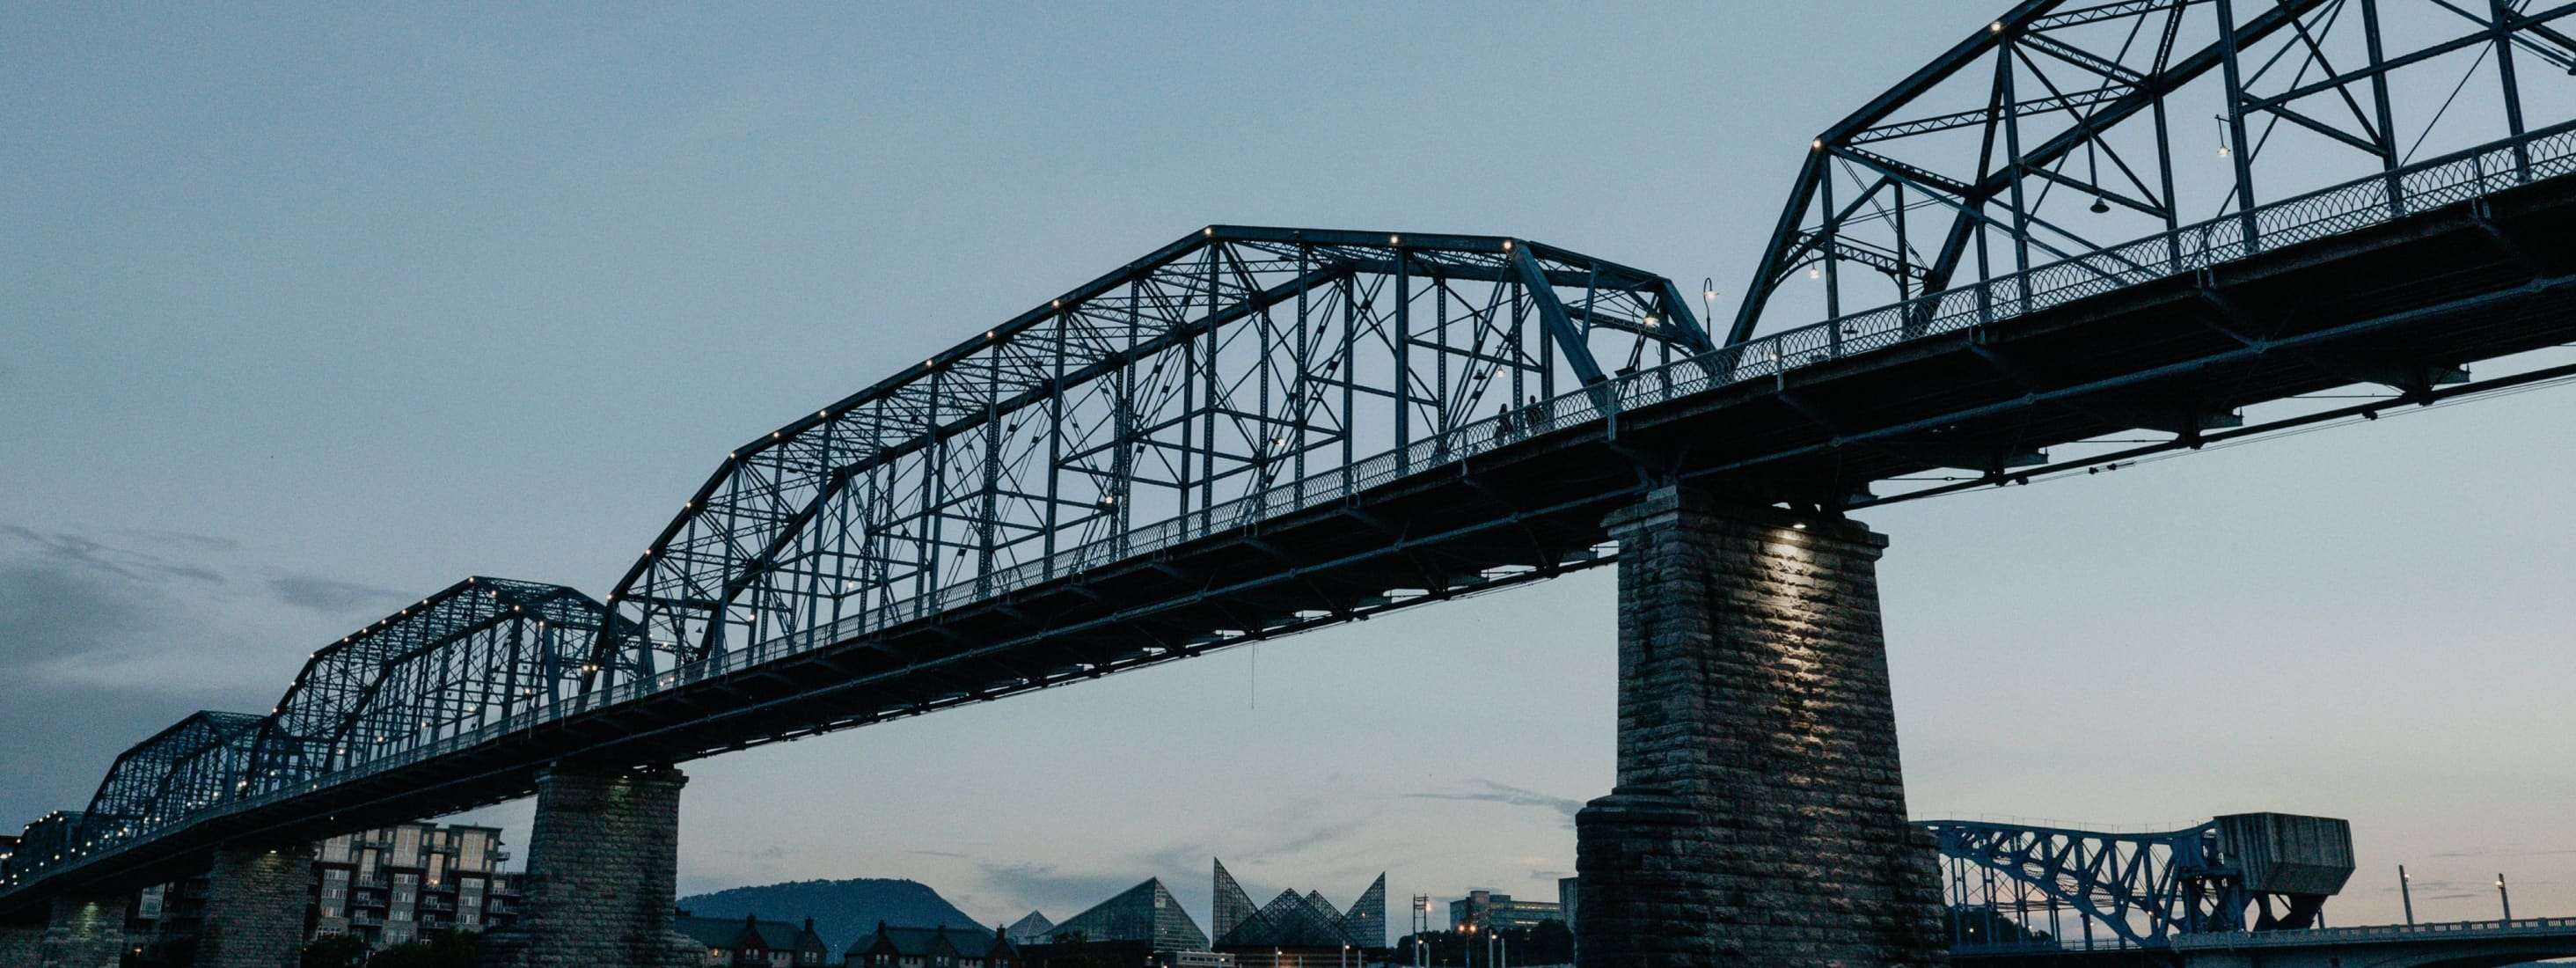 An image of a bridge at downtown Chattanooga, TN